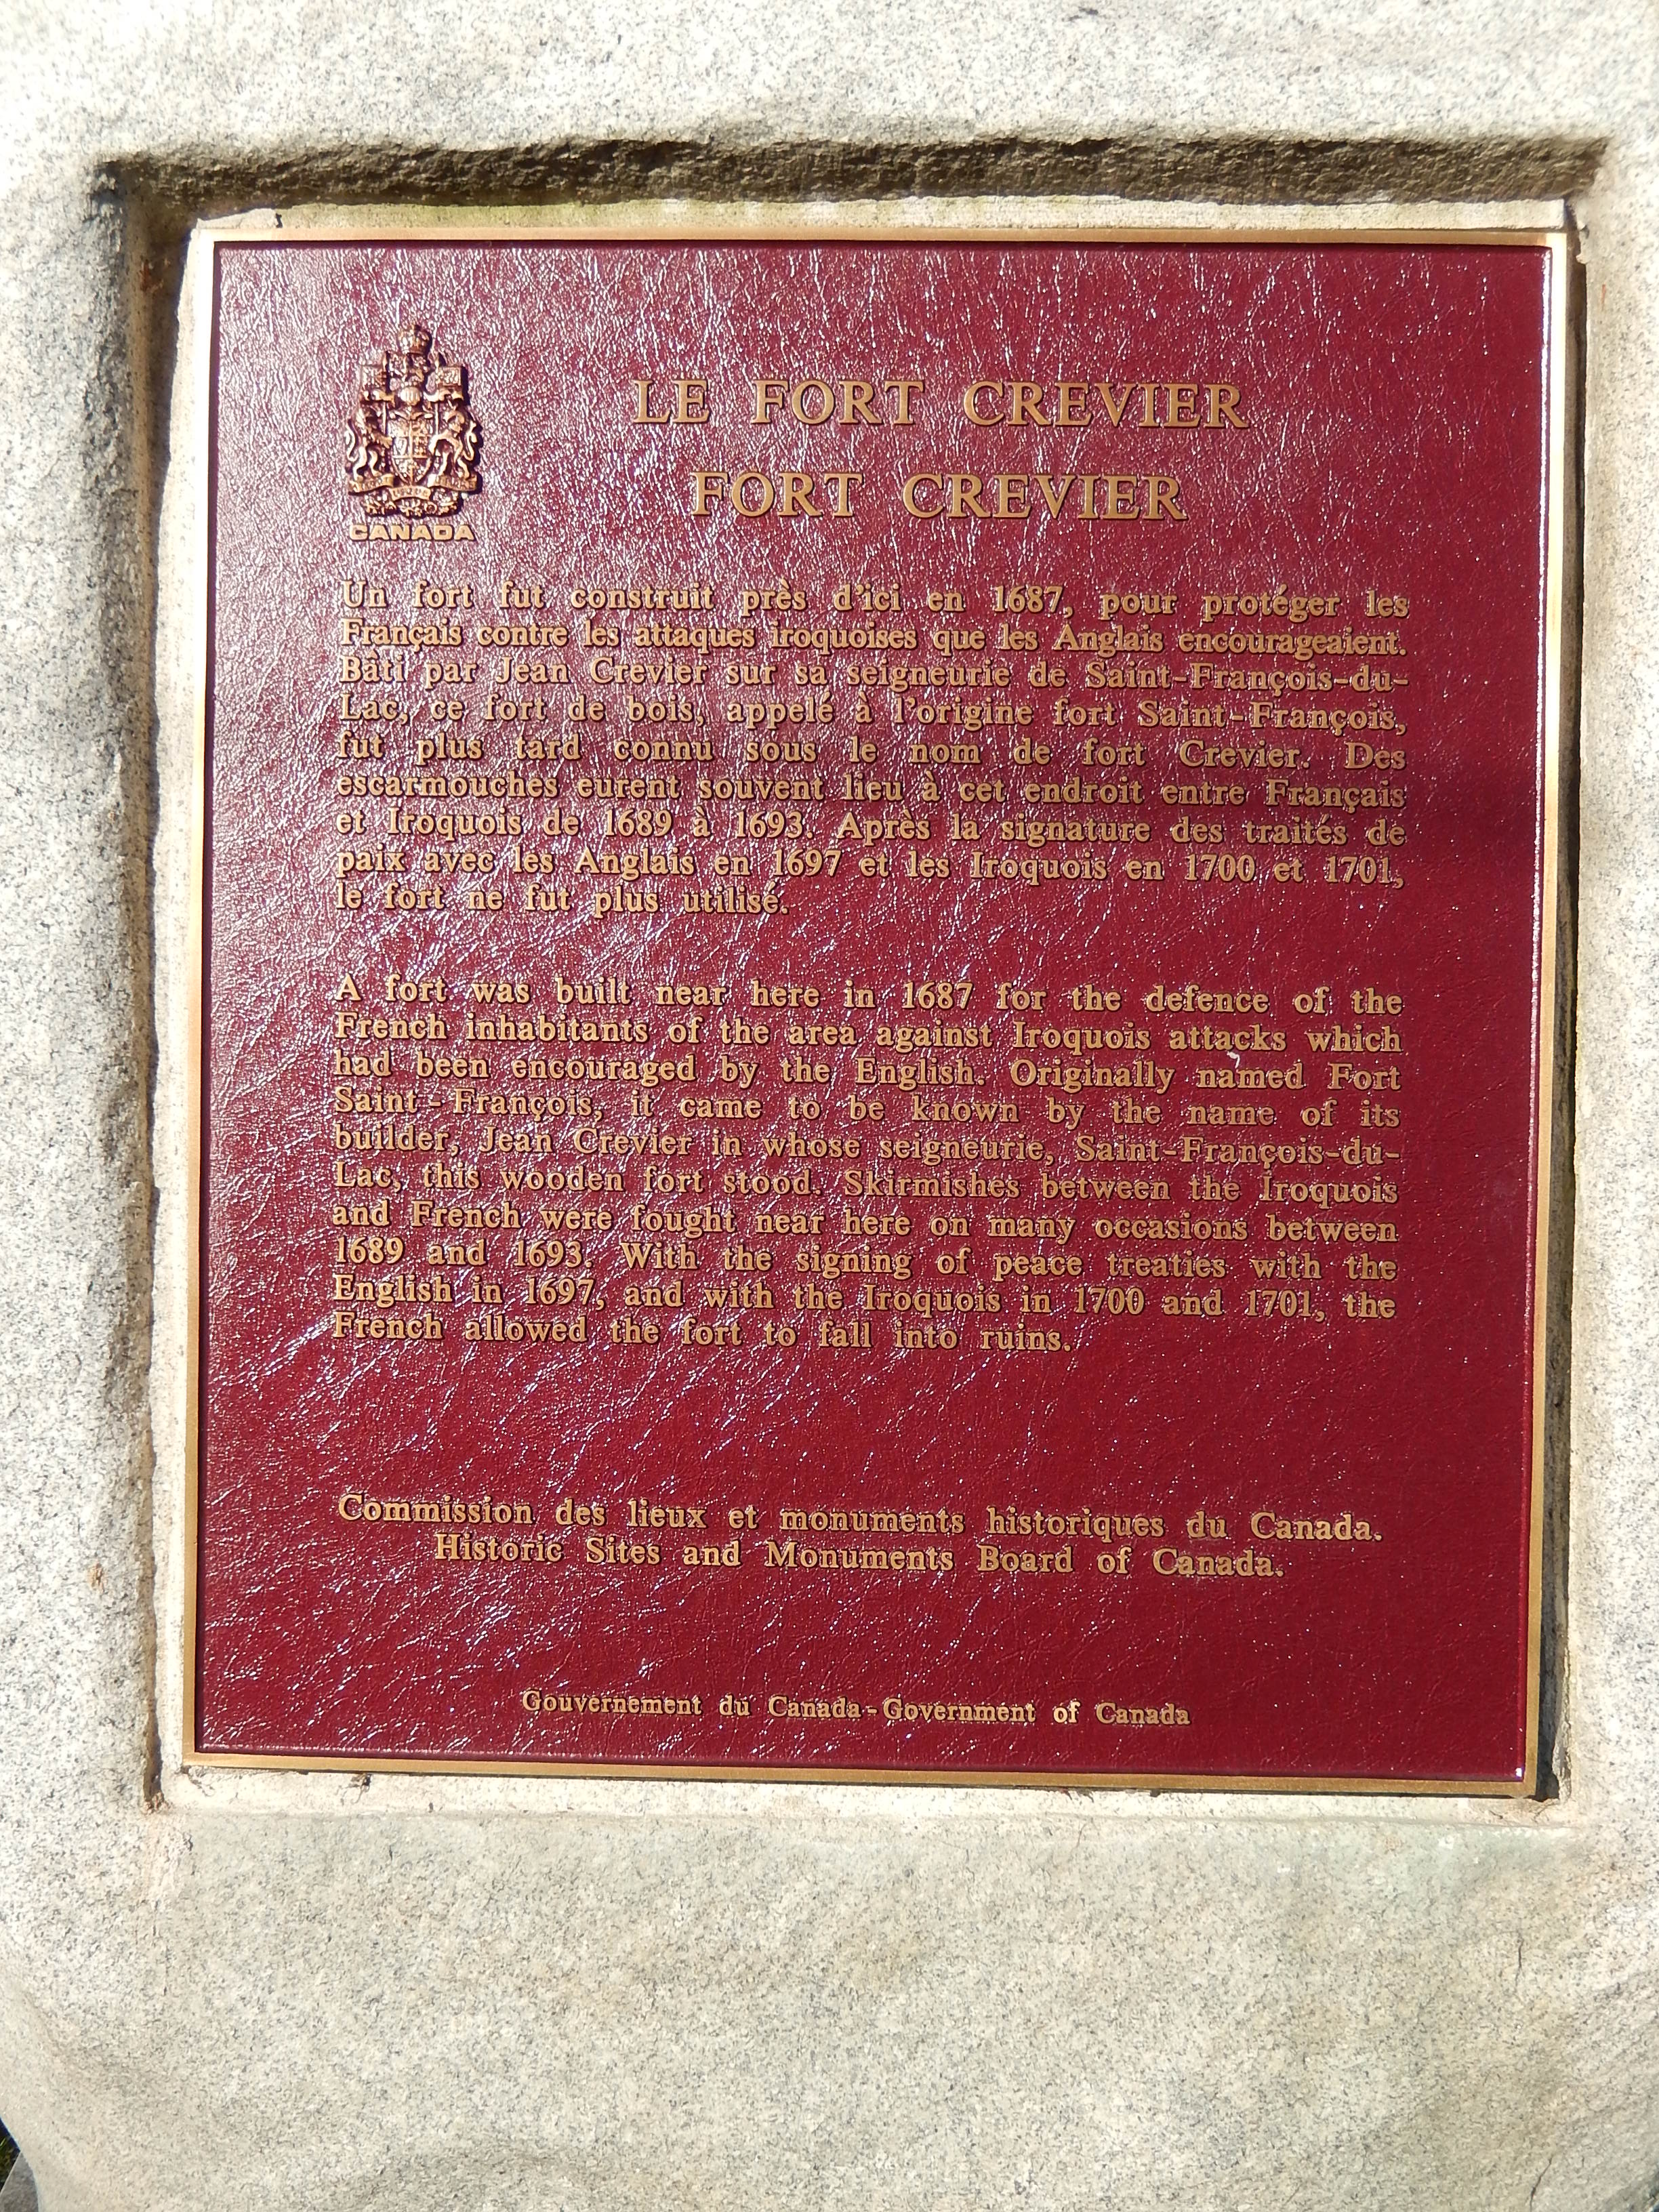 File:Fort Crevier plaque.JPG - Wikimedia Commons